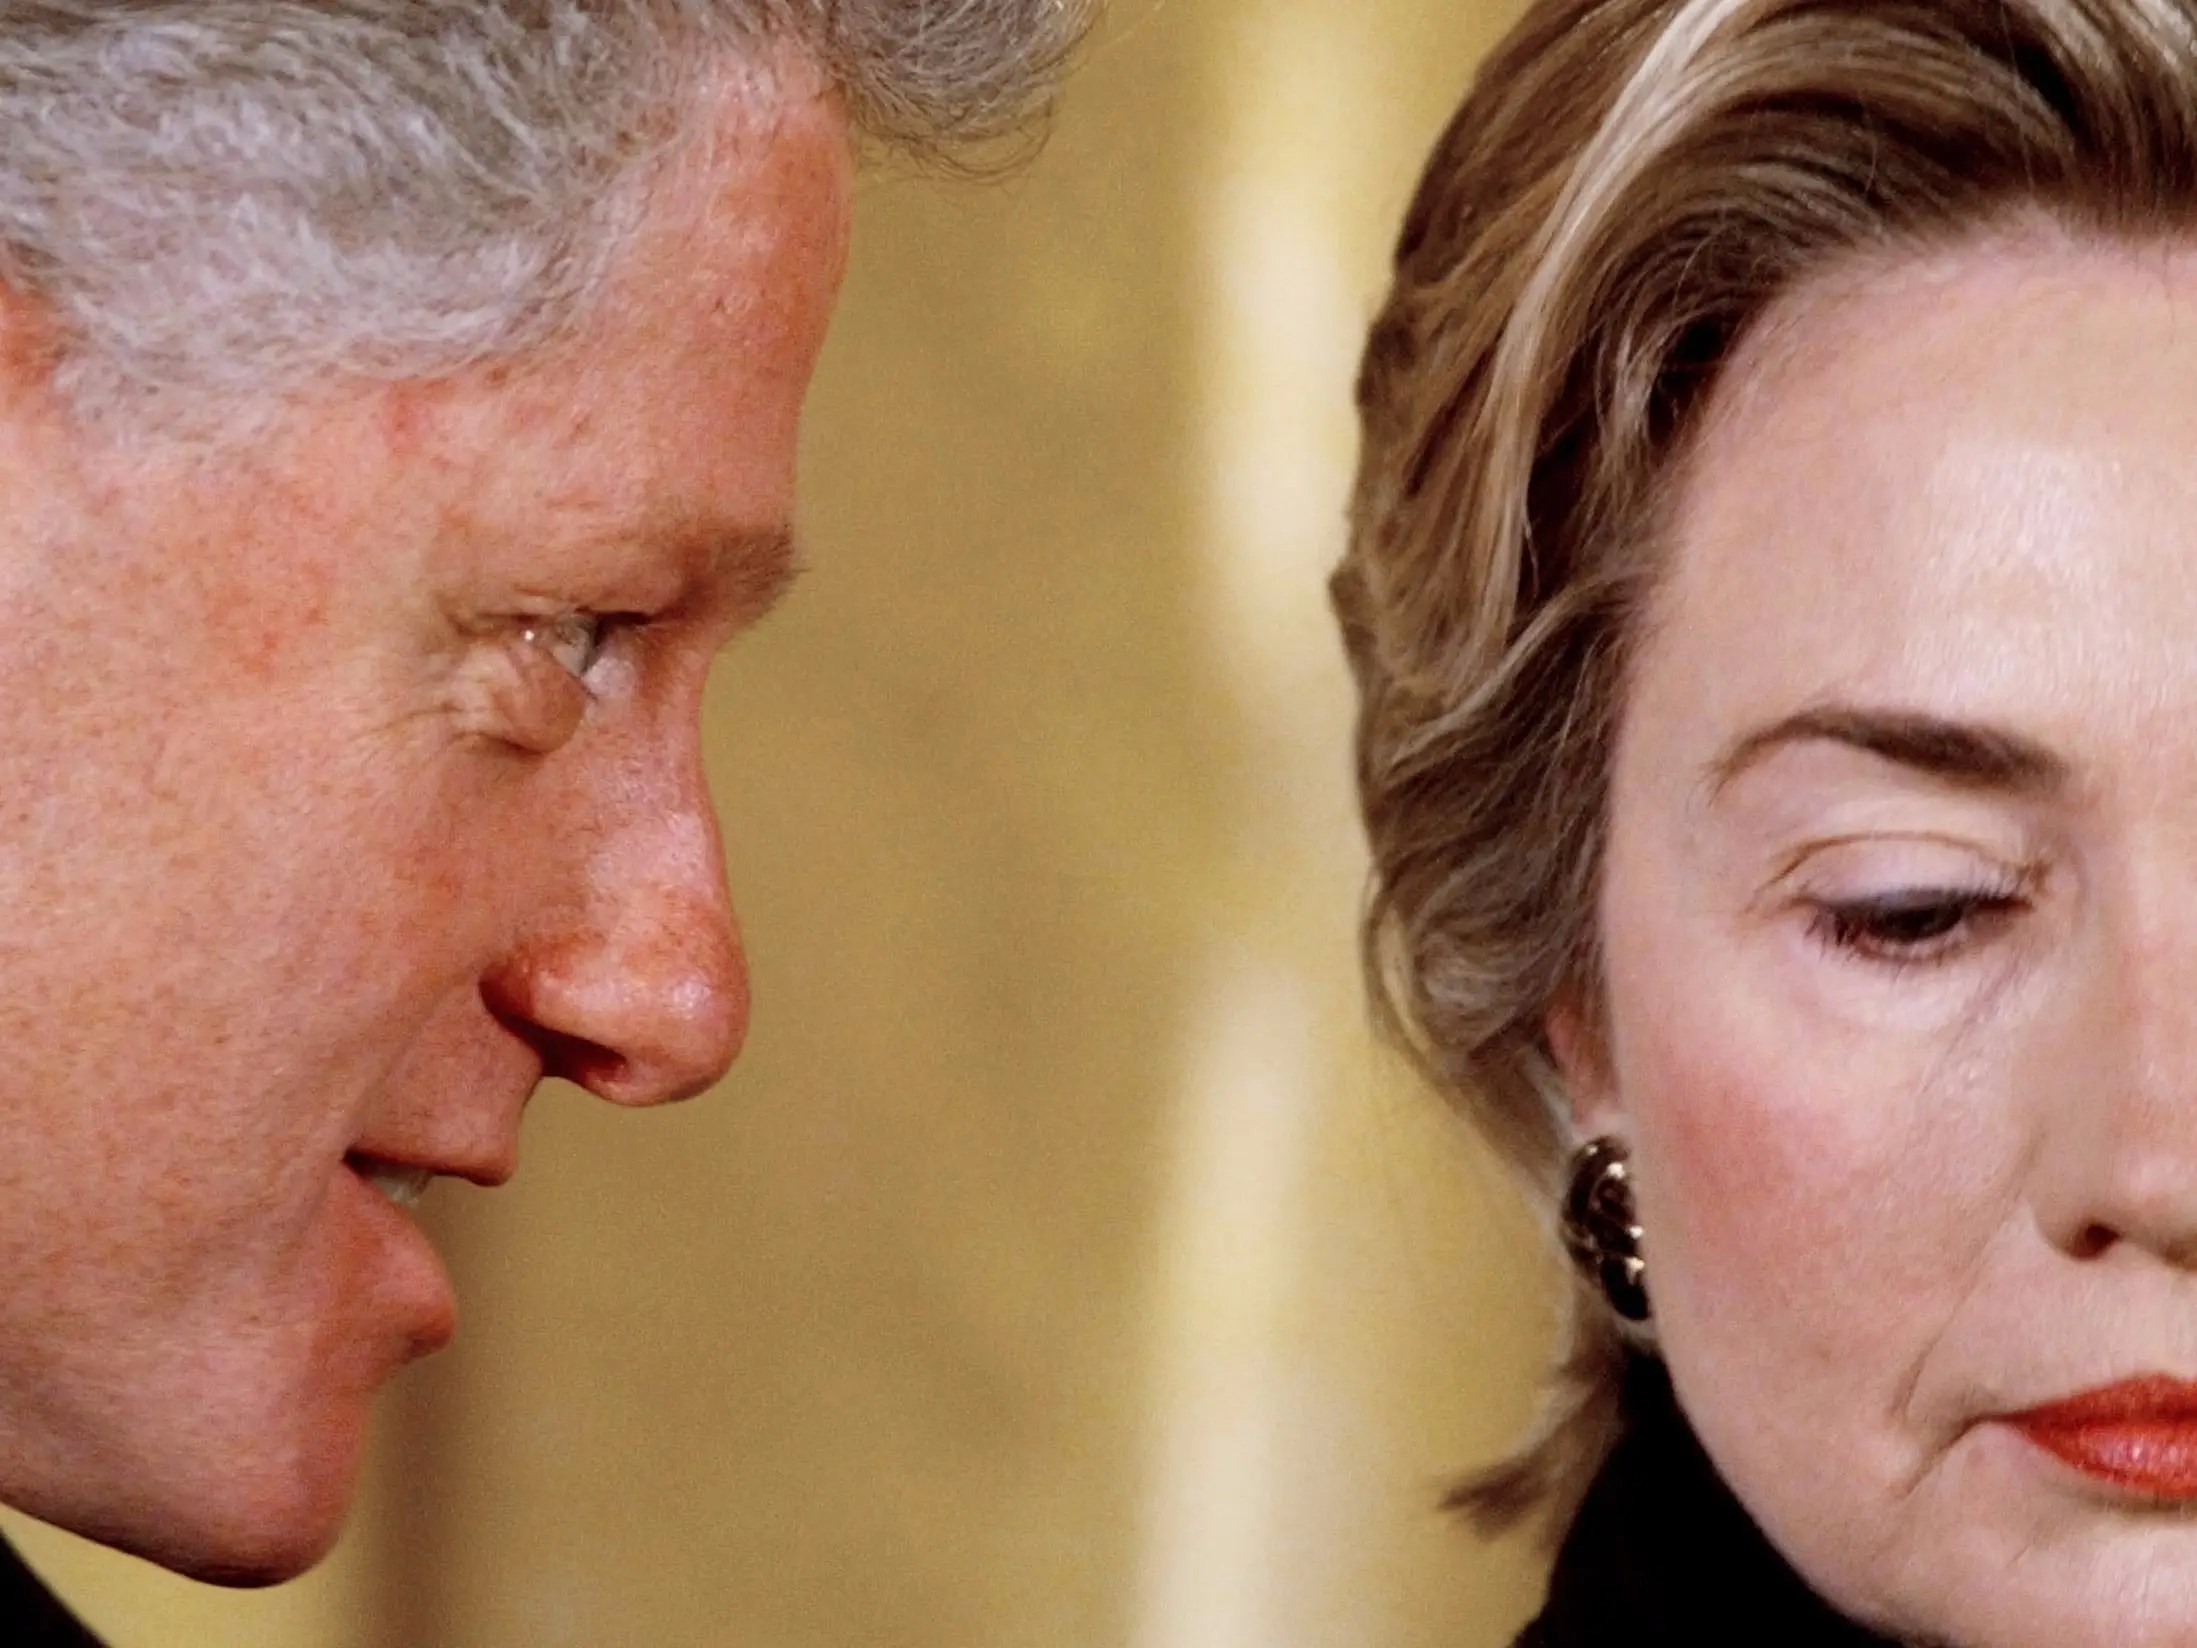 Controversy rocked the White House when Bill Clinton, two years into his second term, admitted to having an affair with an intern. Hillary Clinton stuck by him, shocking some feminists and contributing to the survival of her husband's presidency.